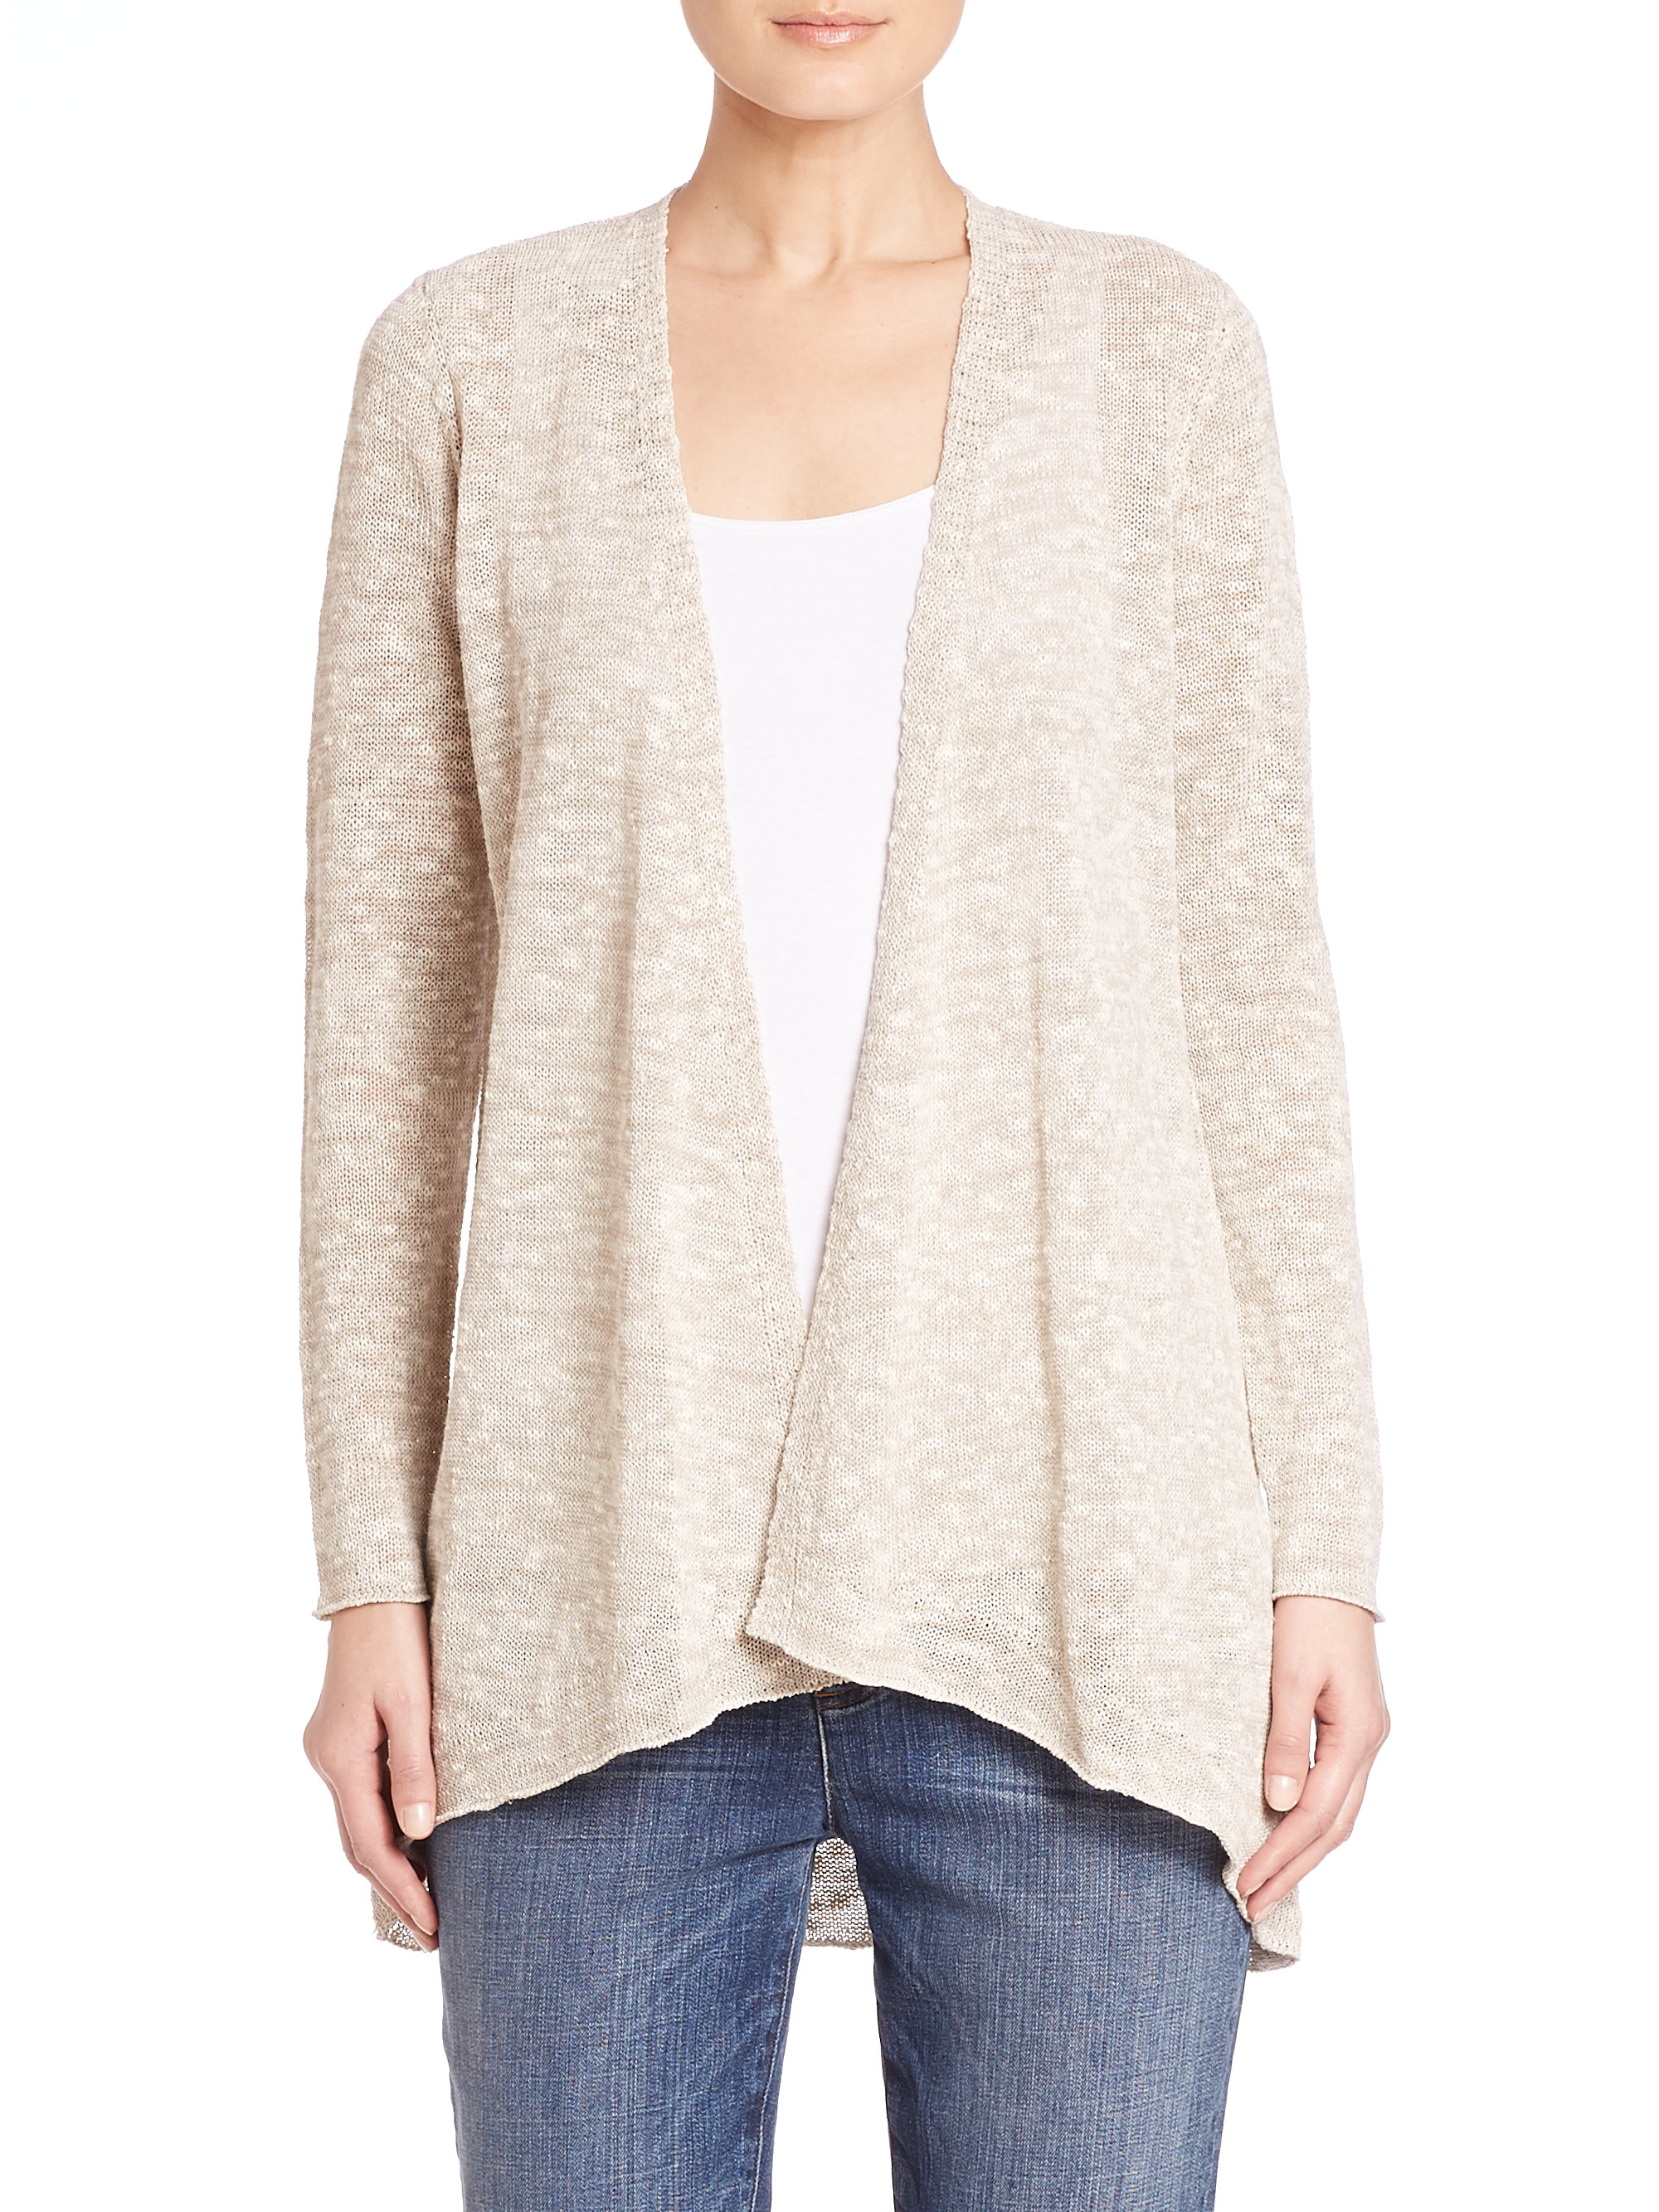 4f4d635e04 Lyst - Eileen Fisher Angled Open-front Cardigan in Natural